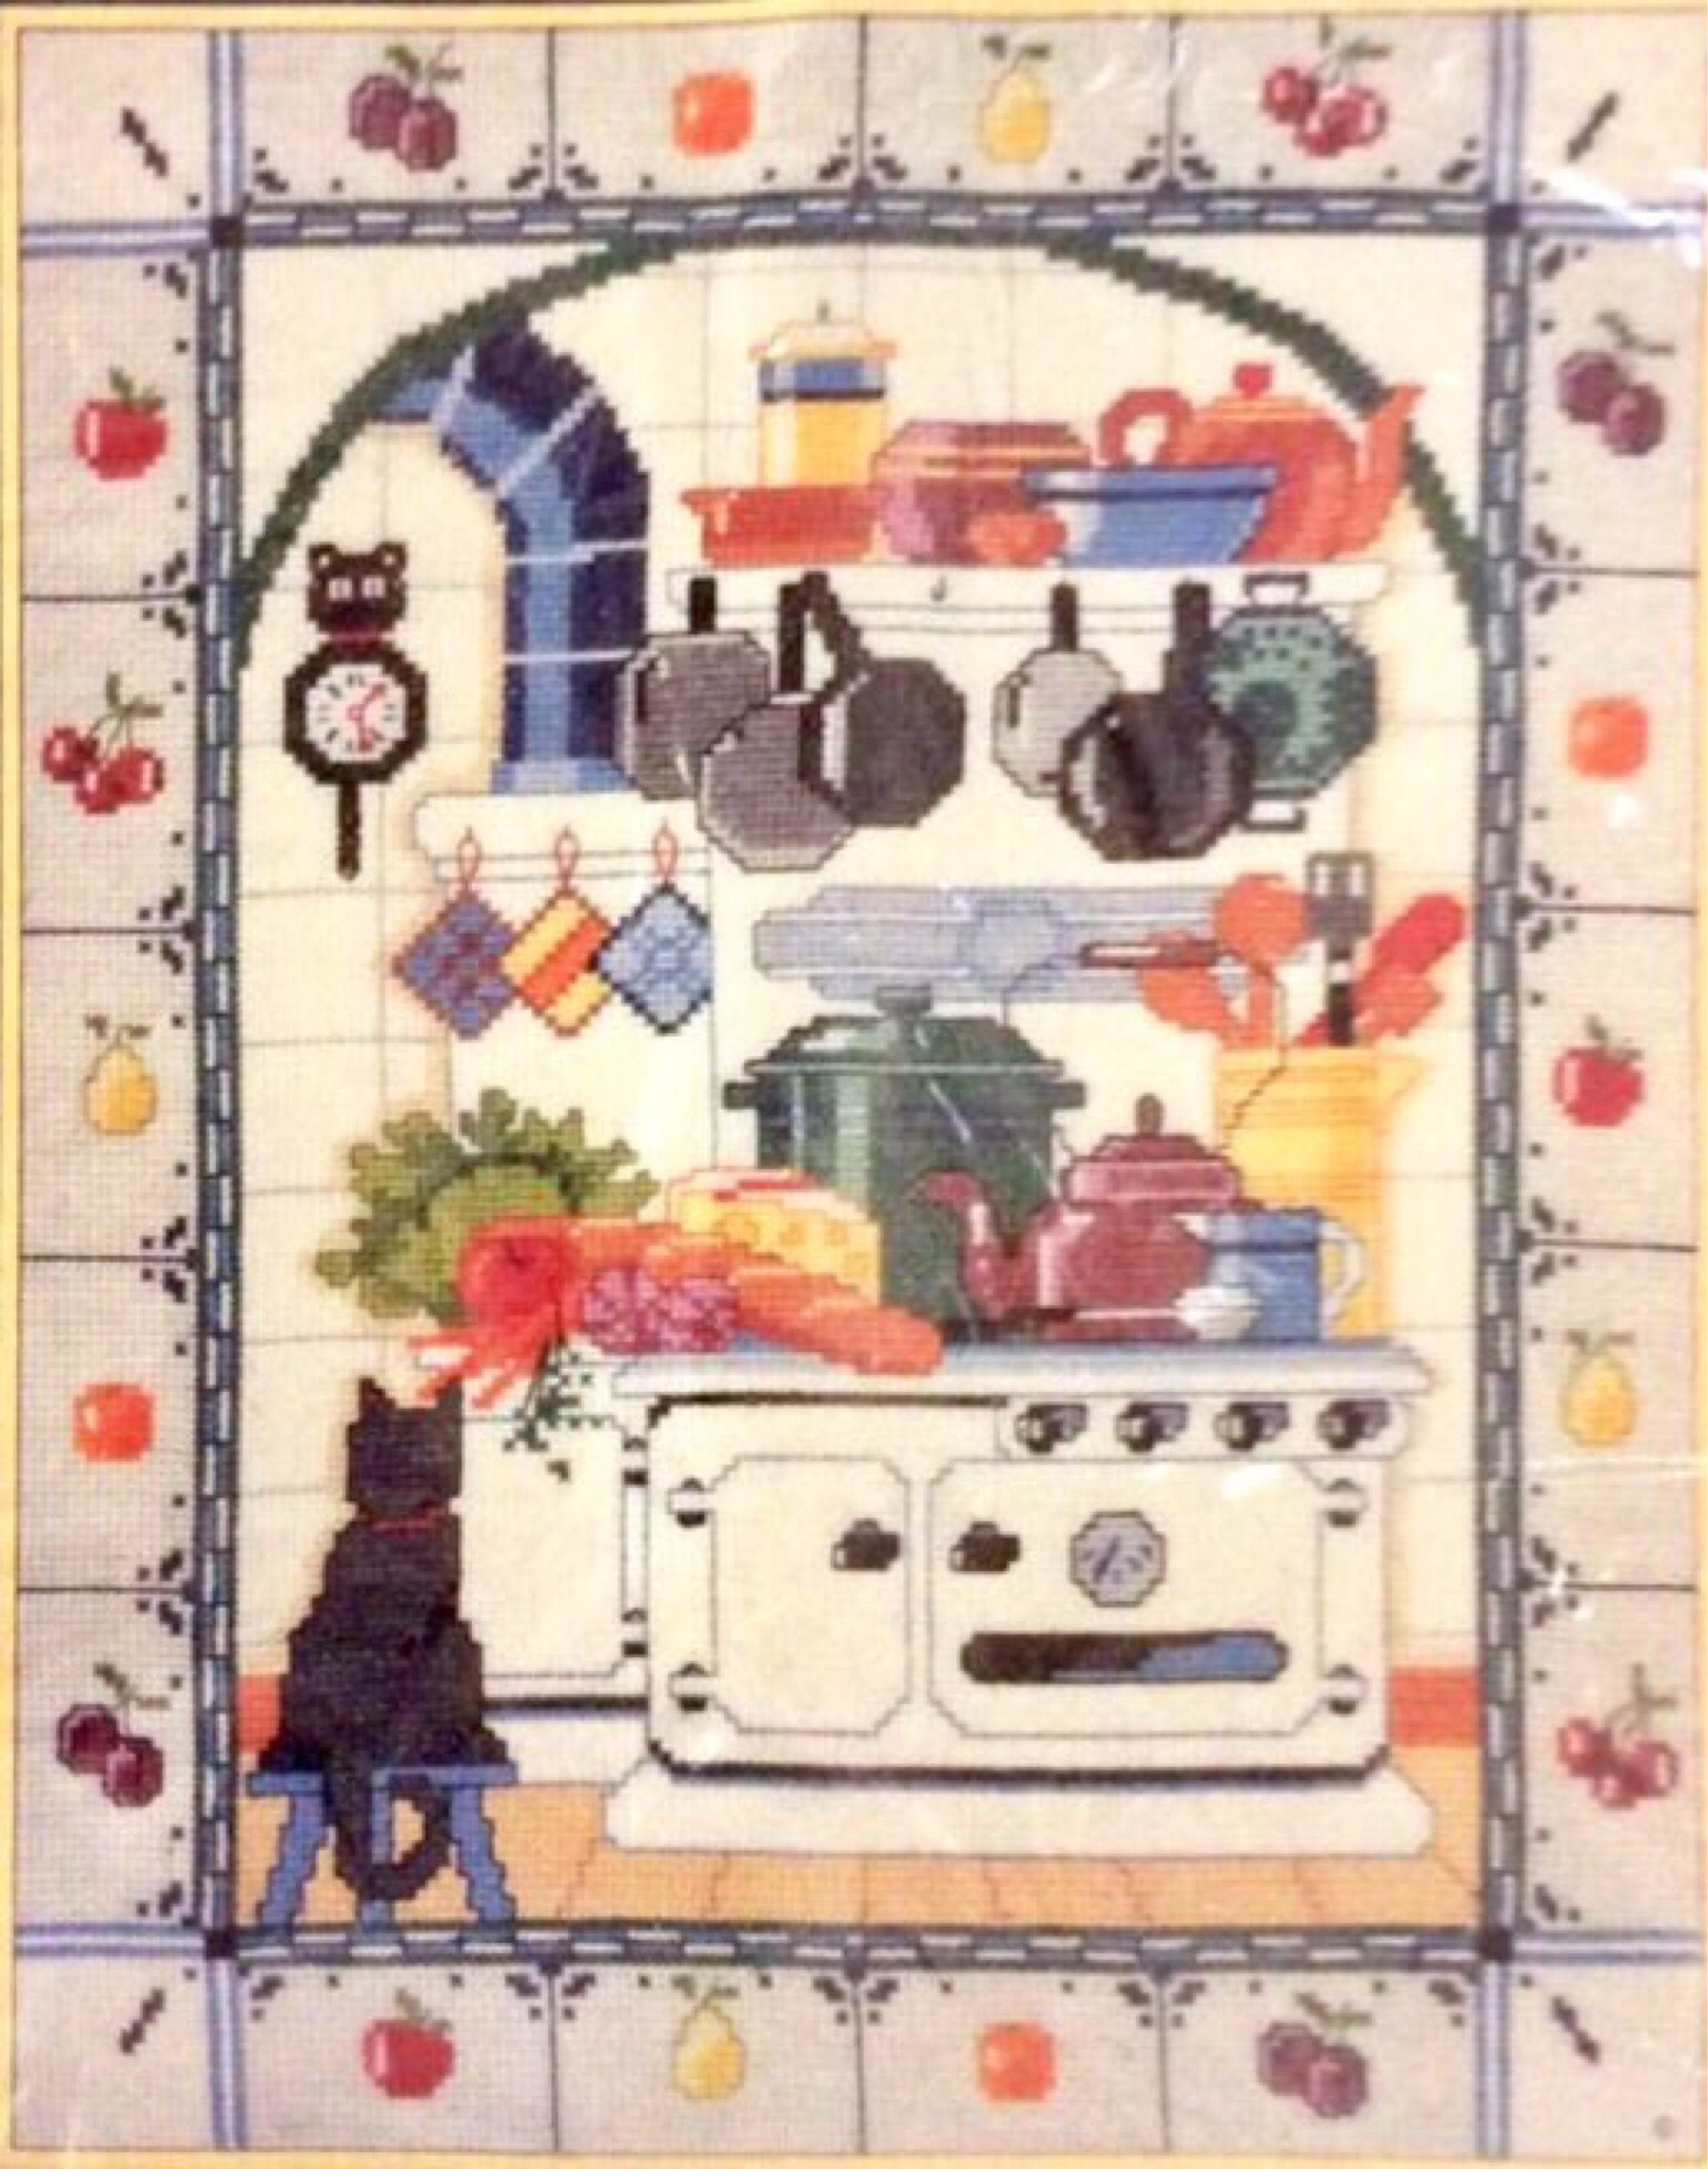 Sunset Counted Cross Stitch Kitchen delight Kit by Nancy Rossi